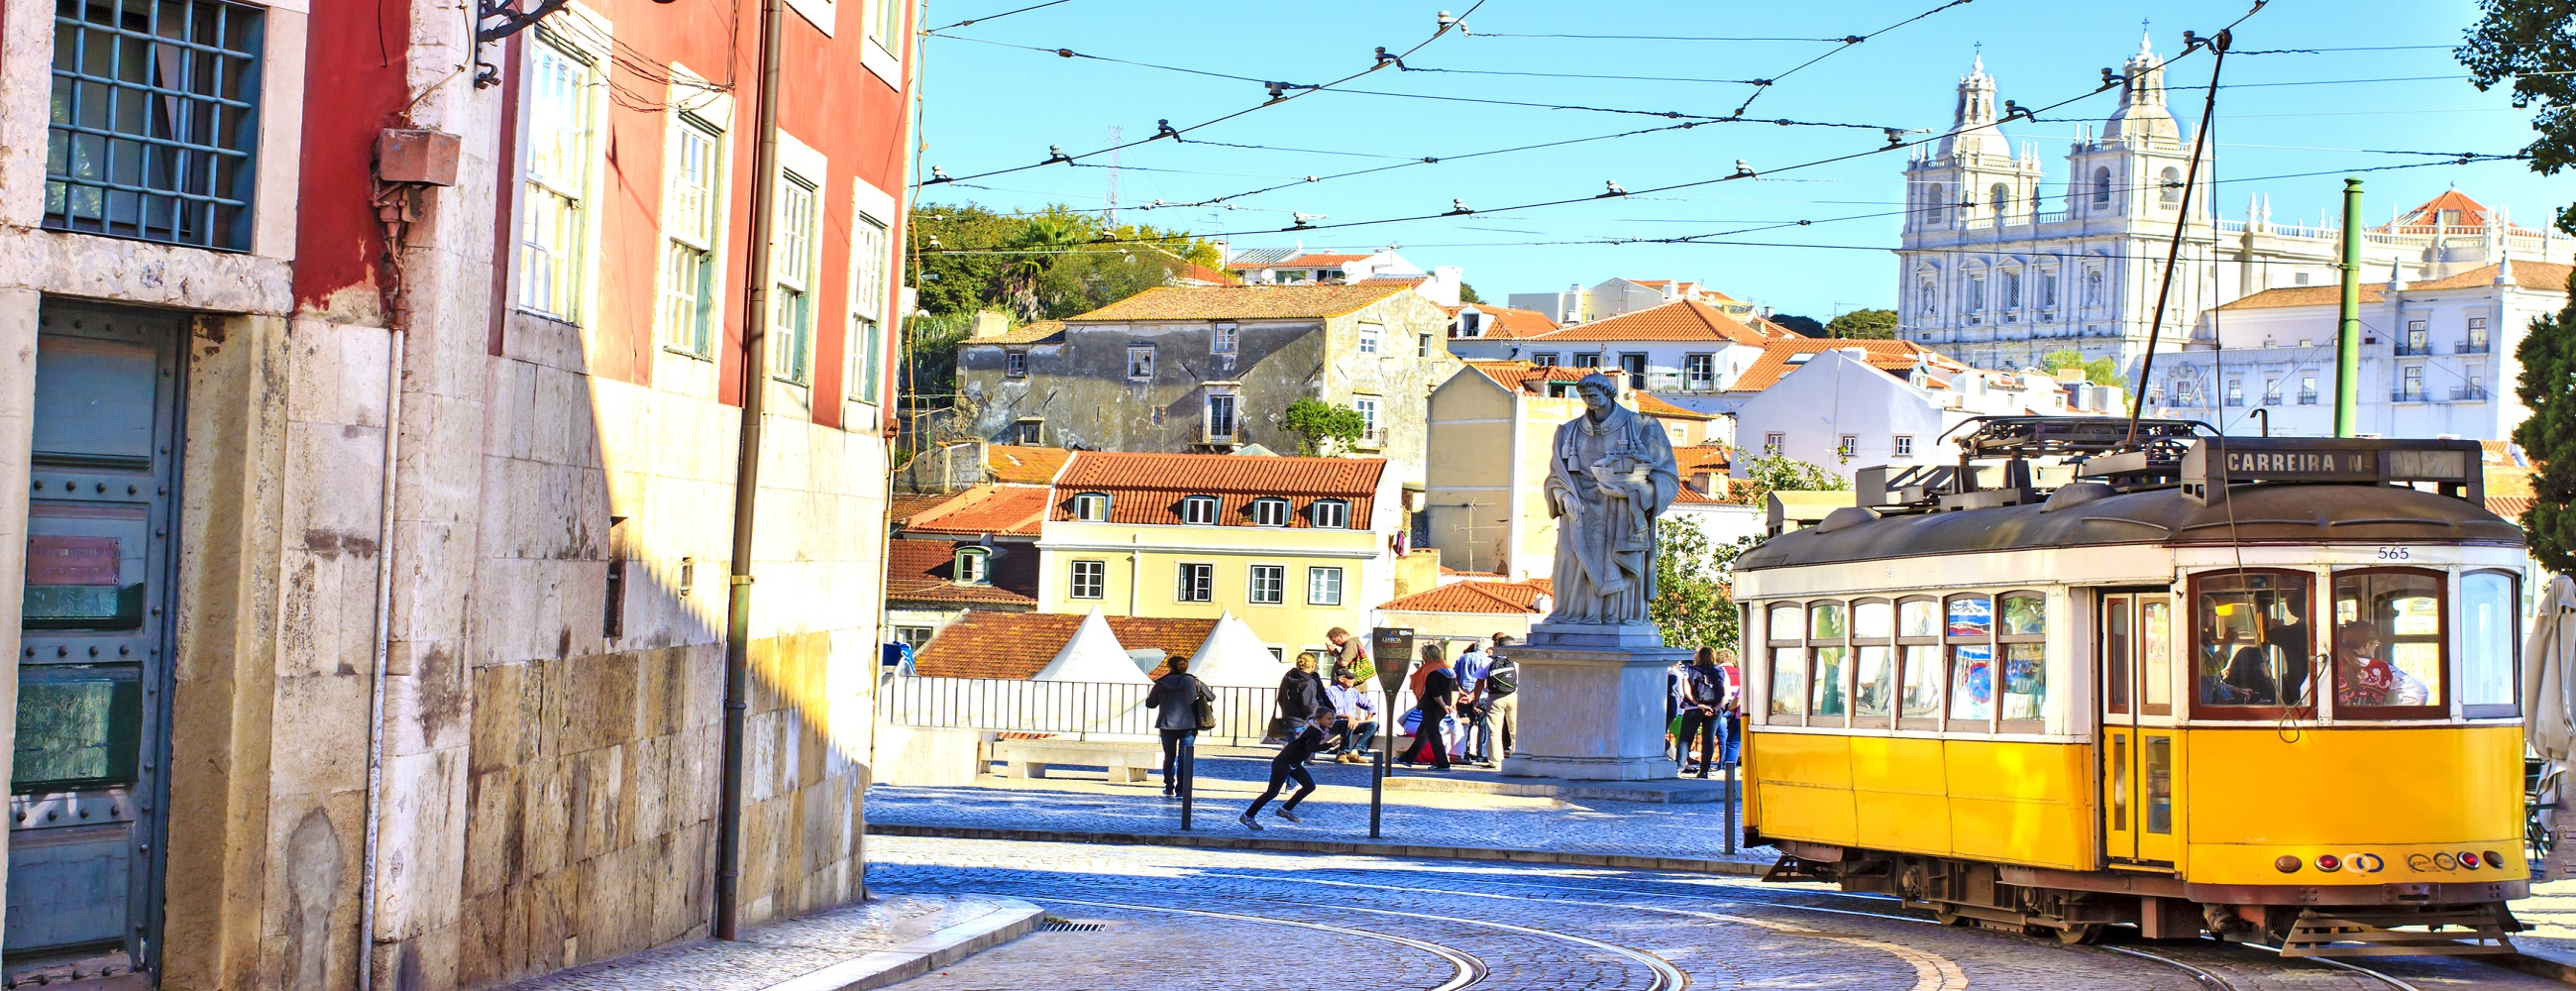 Lisbon - things you didn't know about portugal